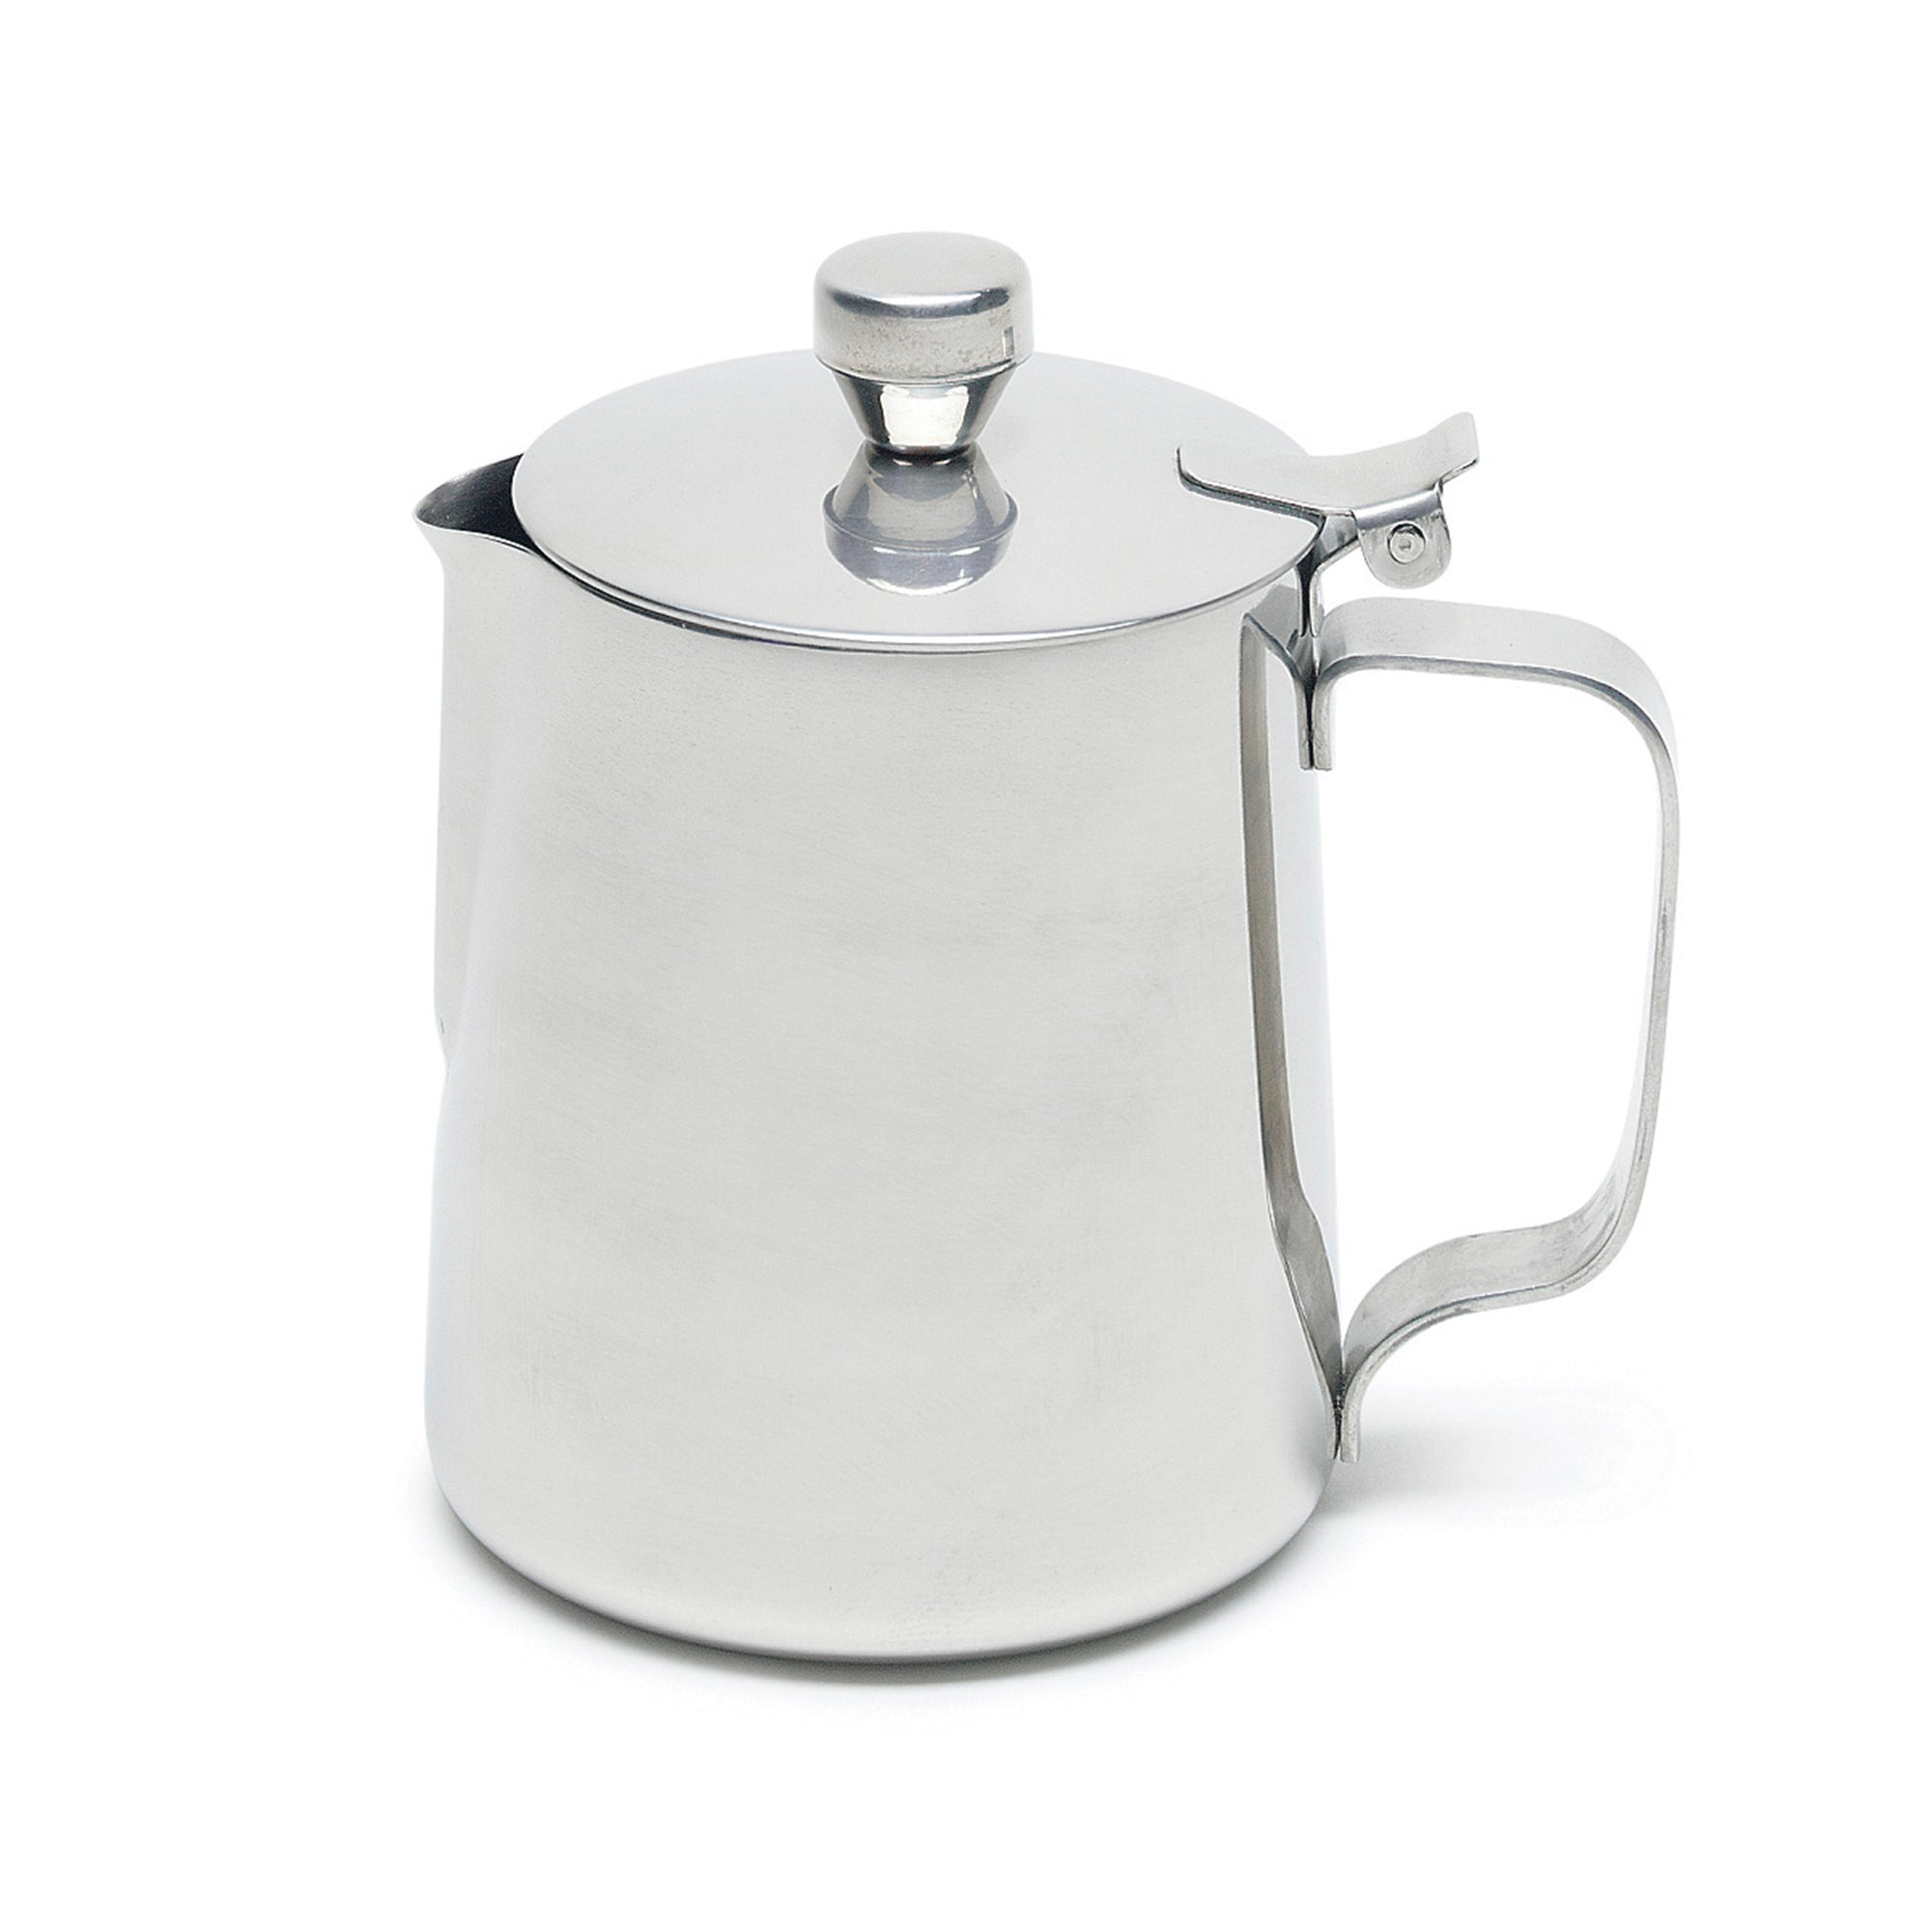 Basic Stainless Coffee Server 1,5L - Merx - Espresso Gear